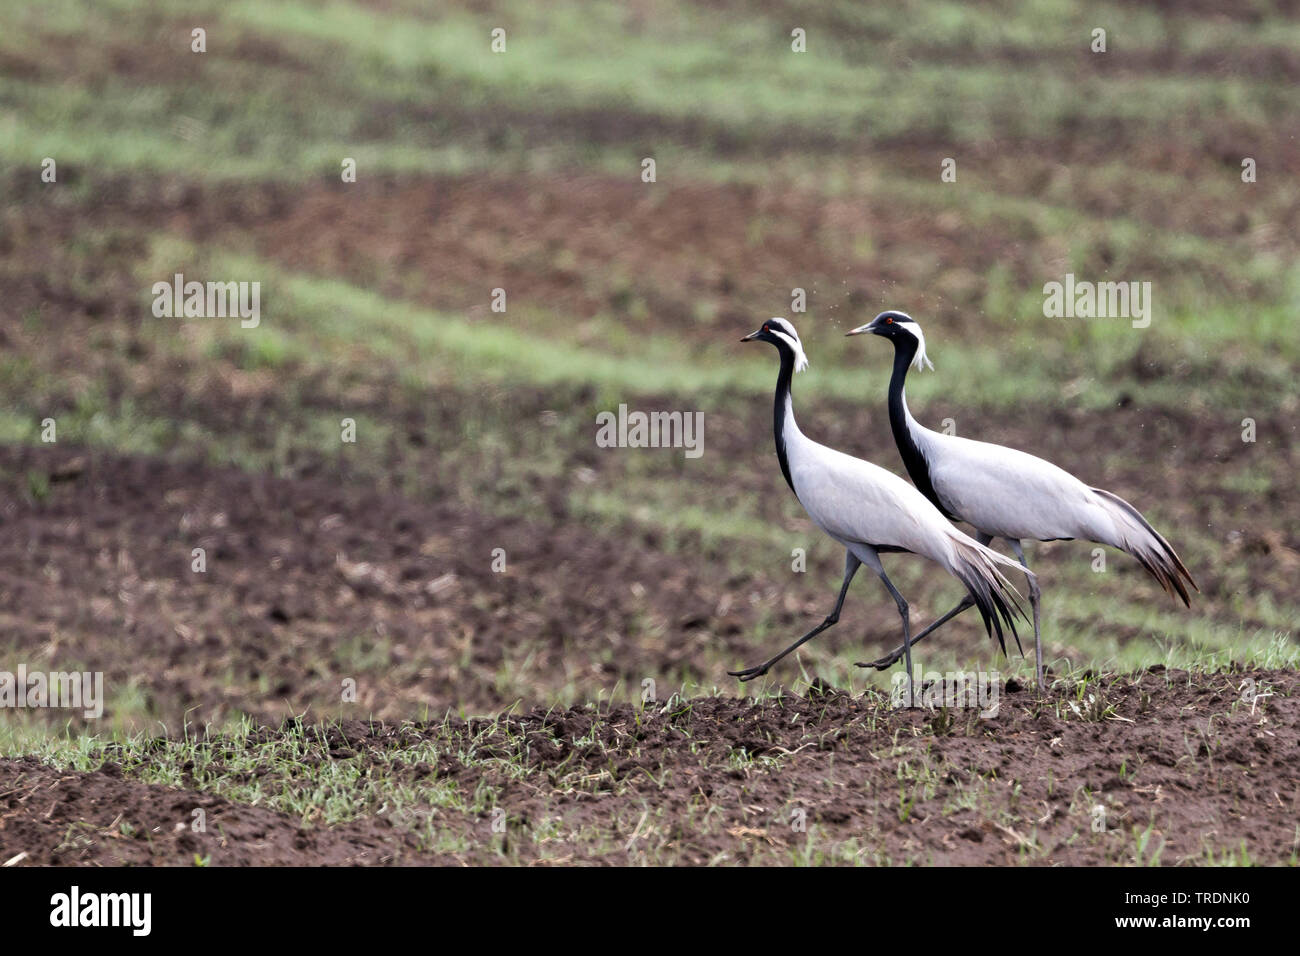 Jungfernkranich (Anthropoides virgo, Jungfern-Kranich), zwei Kraniche im Balzkleid in einem Feld, Russland, Baikalsee | demoiselle Crane (Anthropoides v Stockbild